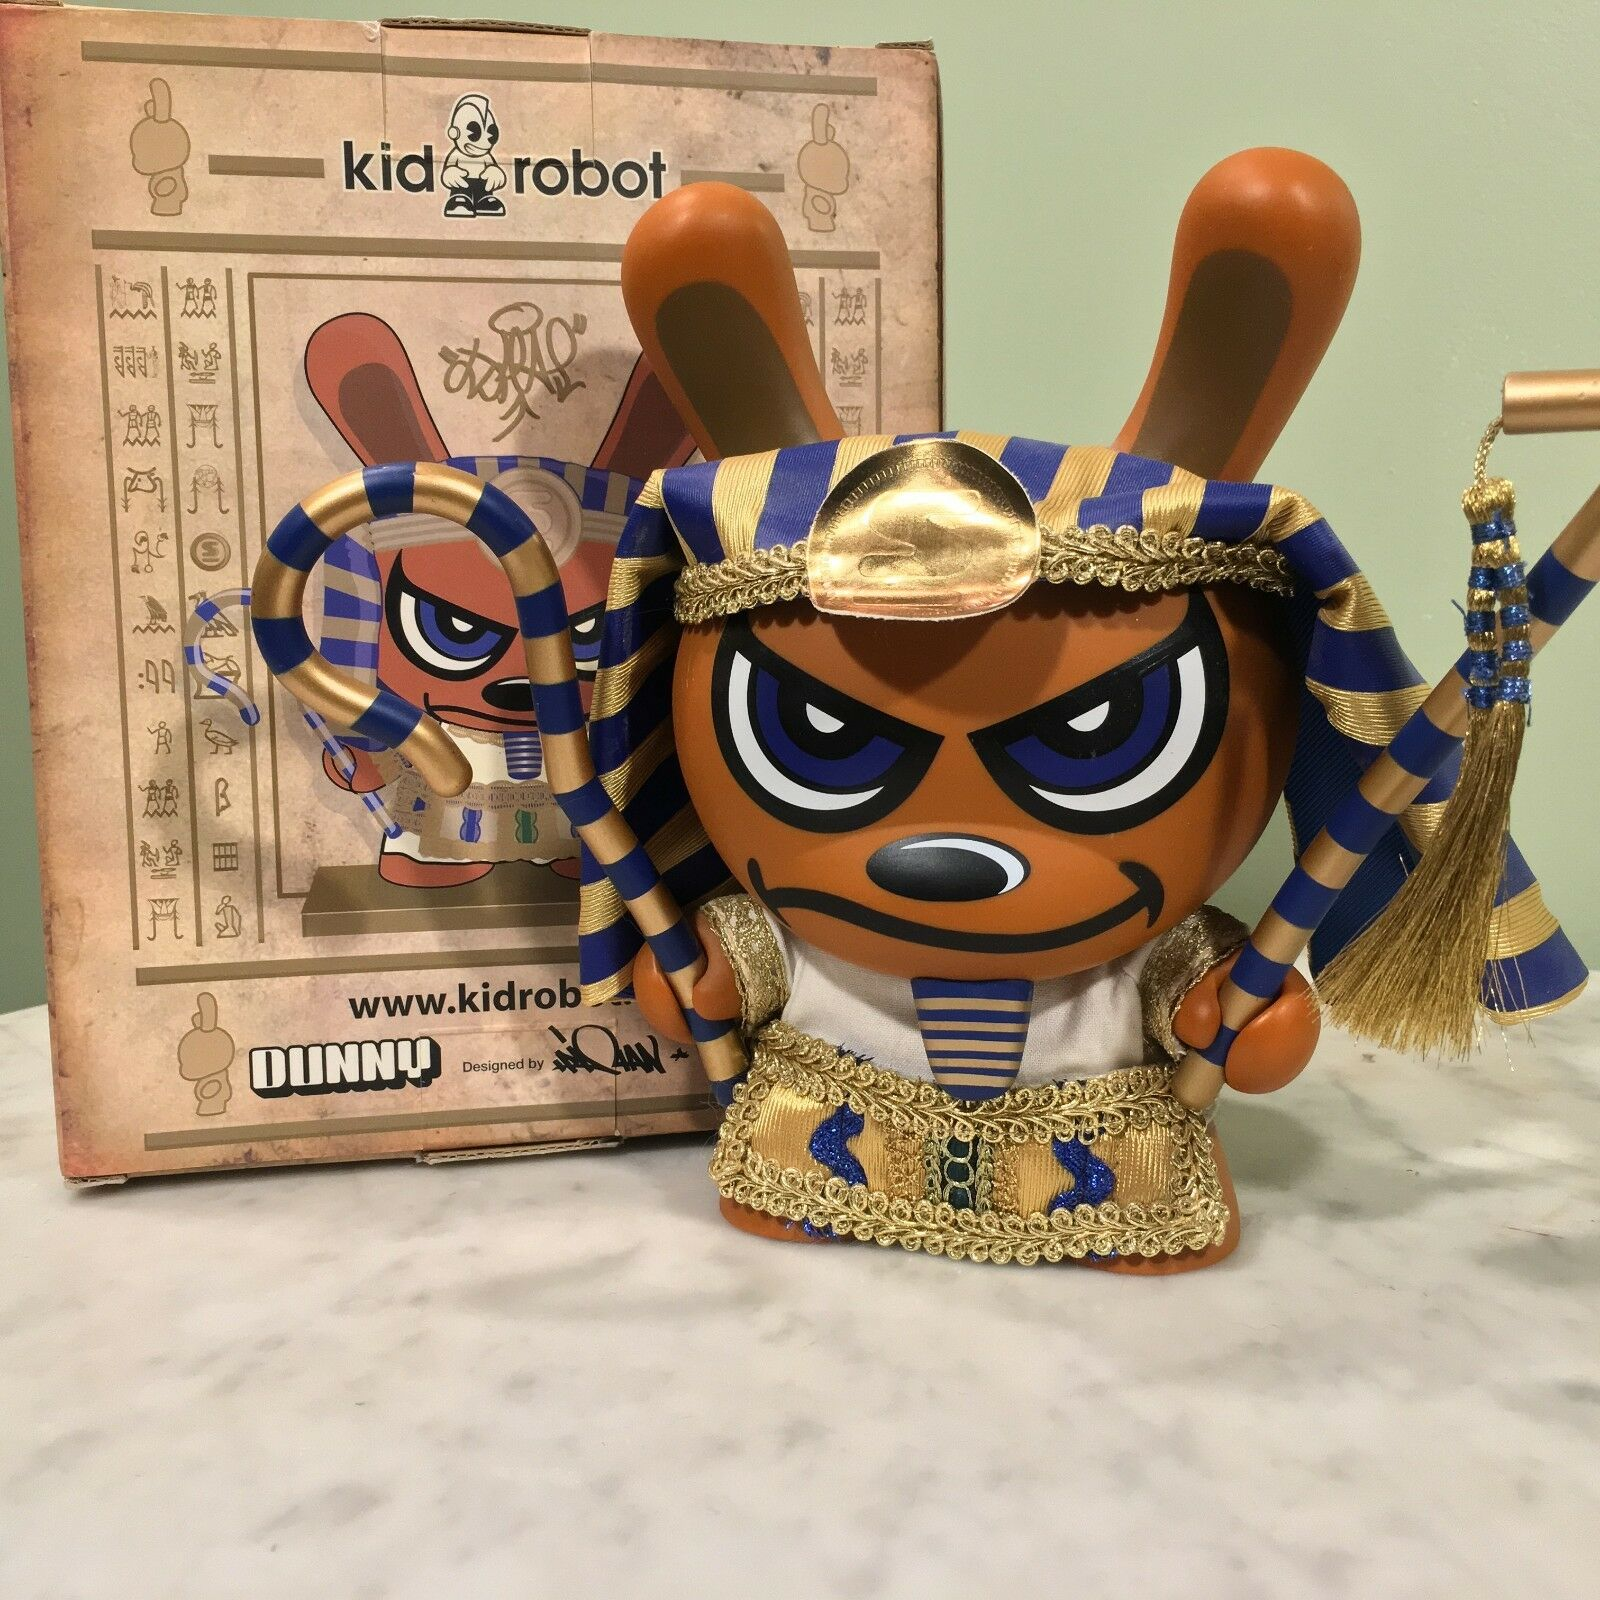 Kidrobot 8  Dunny - 2005 or King Tut par Sket One RARE